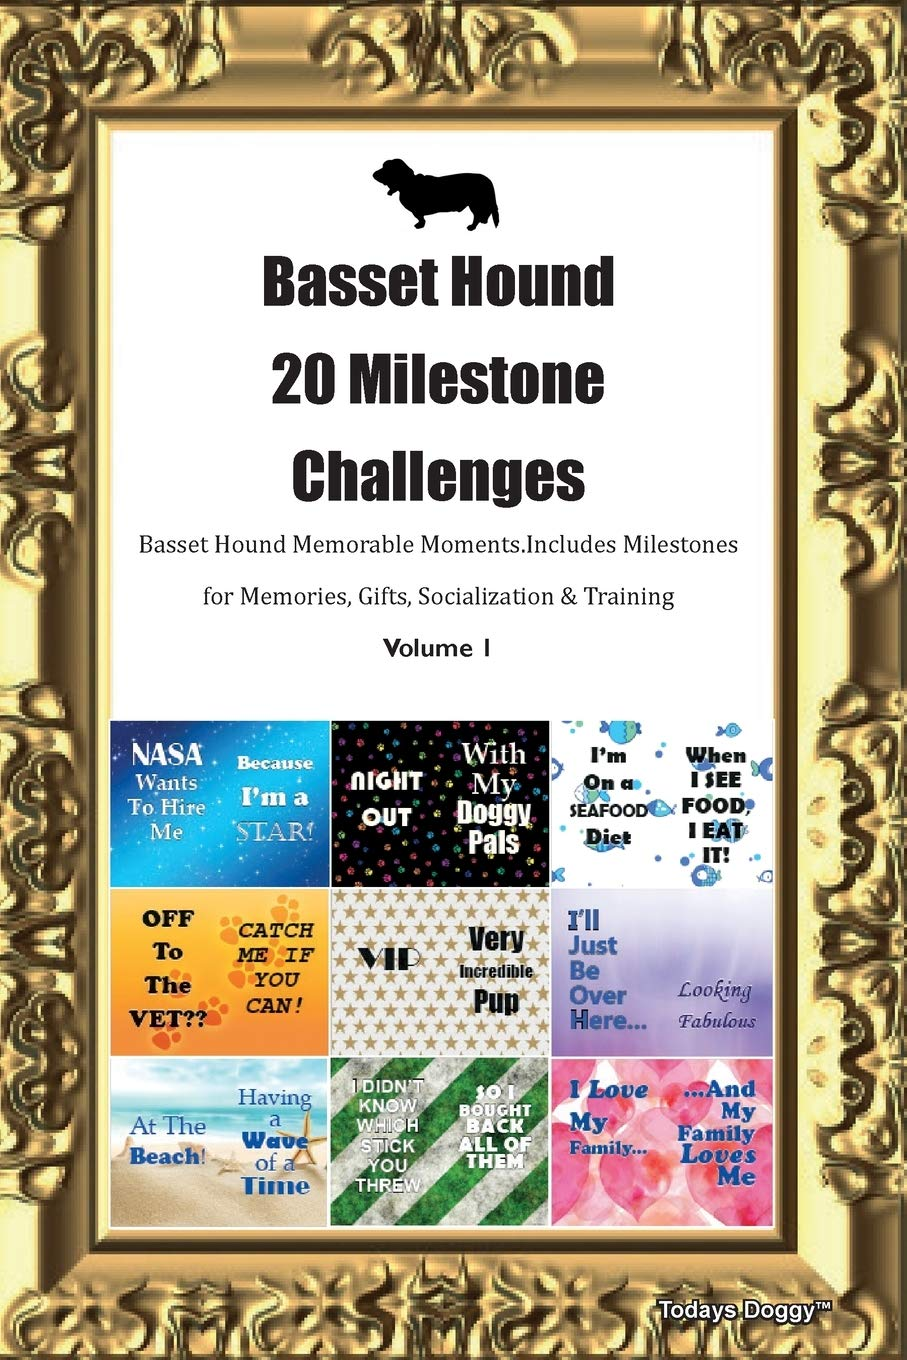 Basset Hound 20 Milestone Challenges Basset Hound Memorable Moments.Includes Milestones for Memories, Gifts…